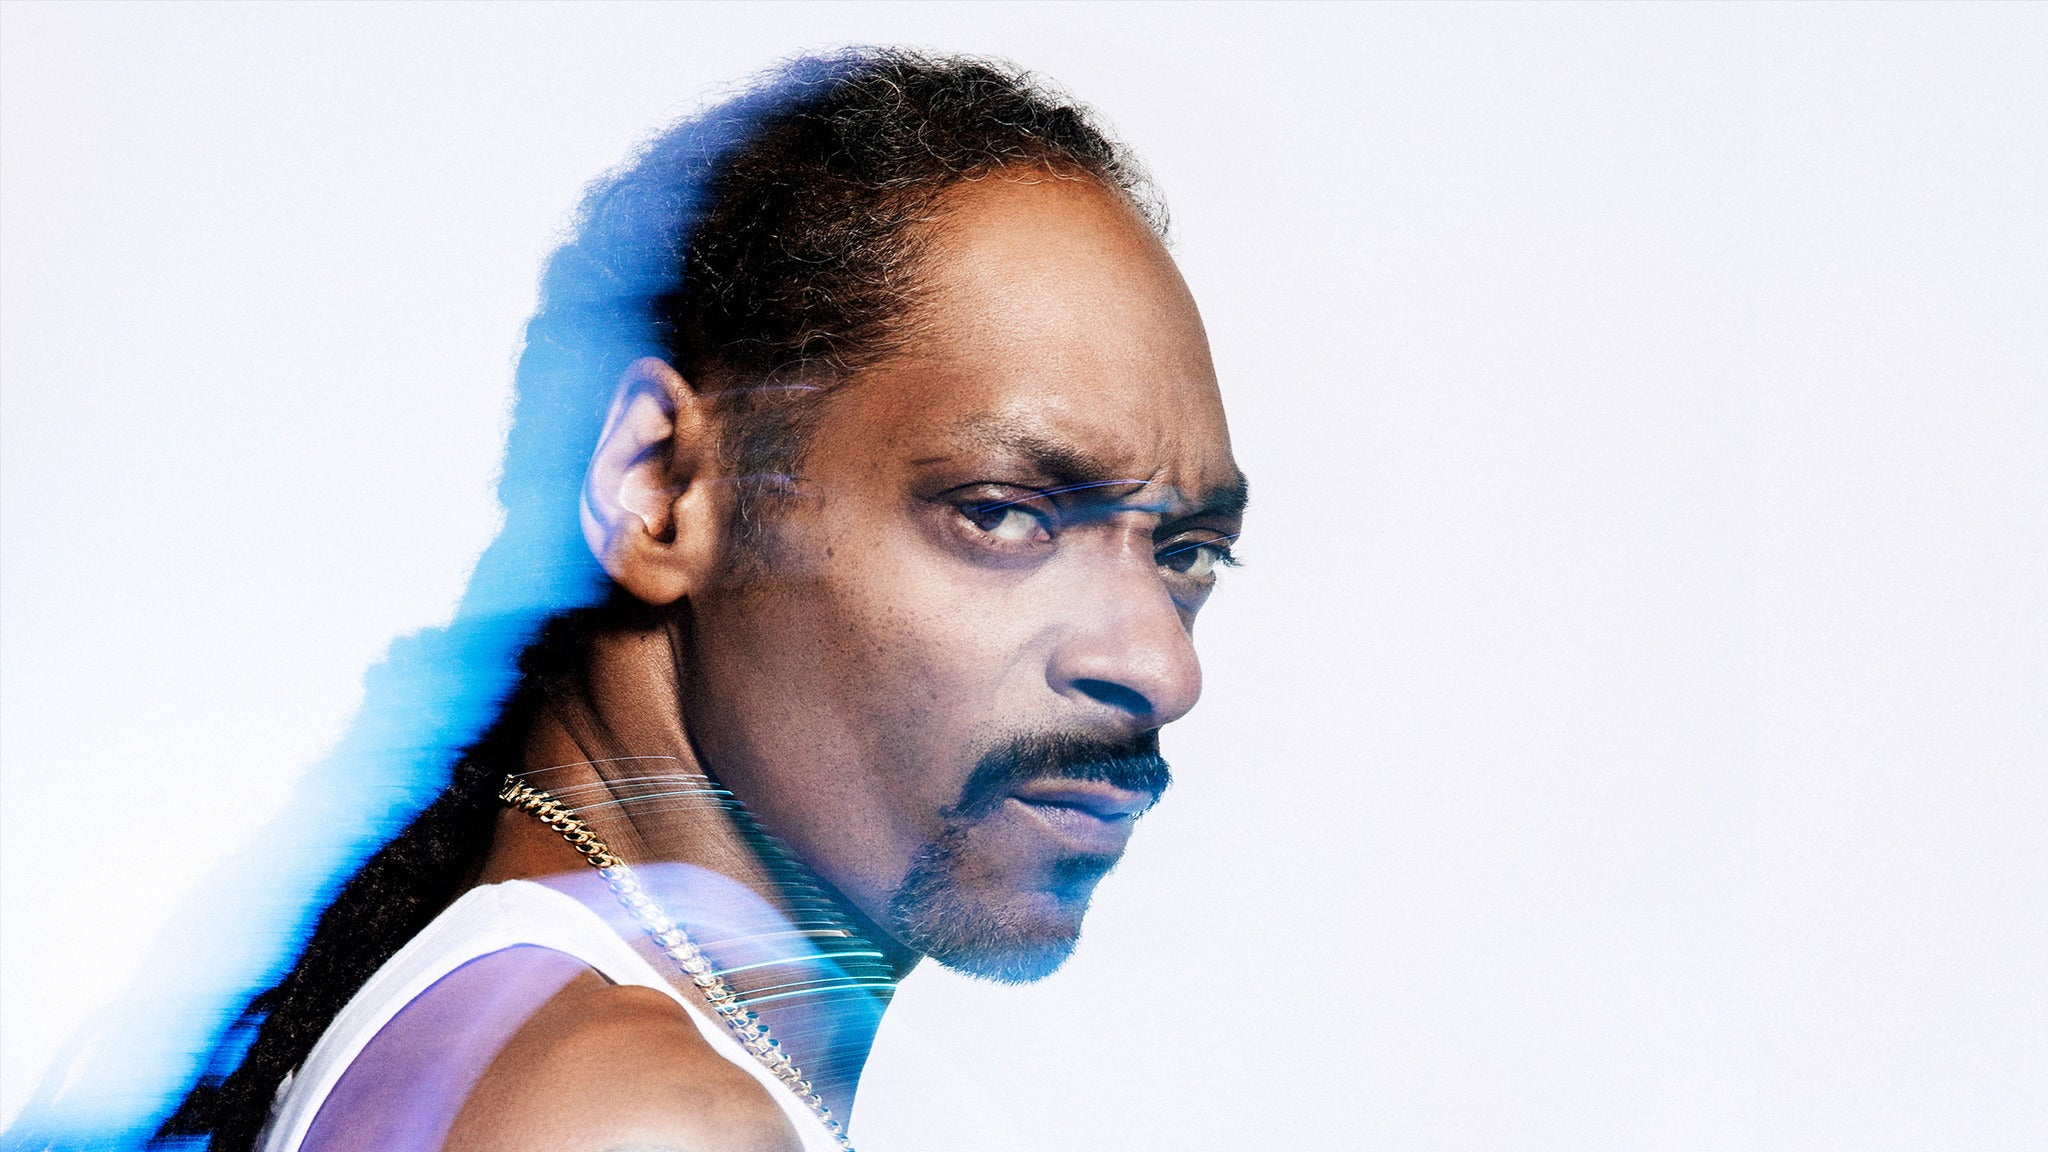 MOUNT WESTMORE w/ Snoop Dogg, Ice Cube, E40, Too Short &  Warren G presale password for event tickets in Ontario, CA (Toyota Arena)